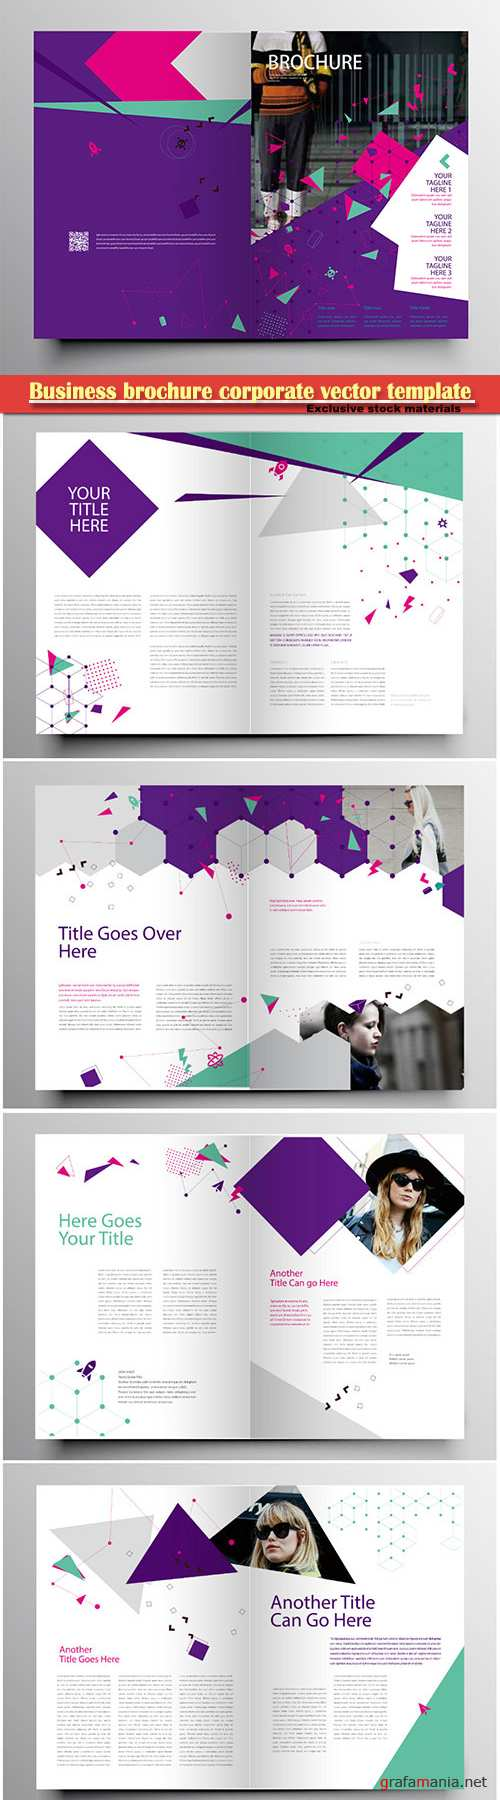 Business brochure corporate vector template, magazine flyer mockup # 33